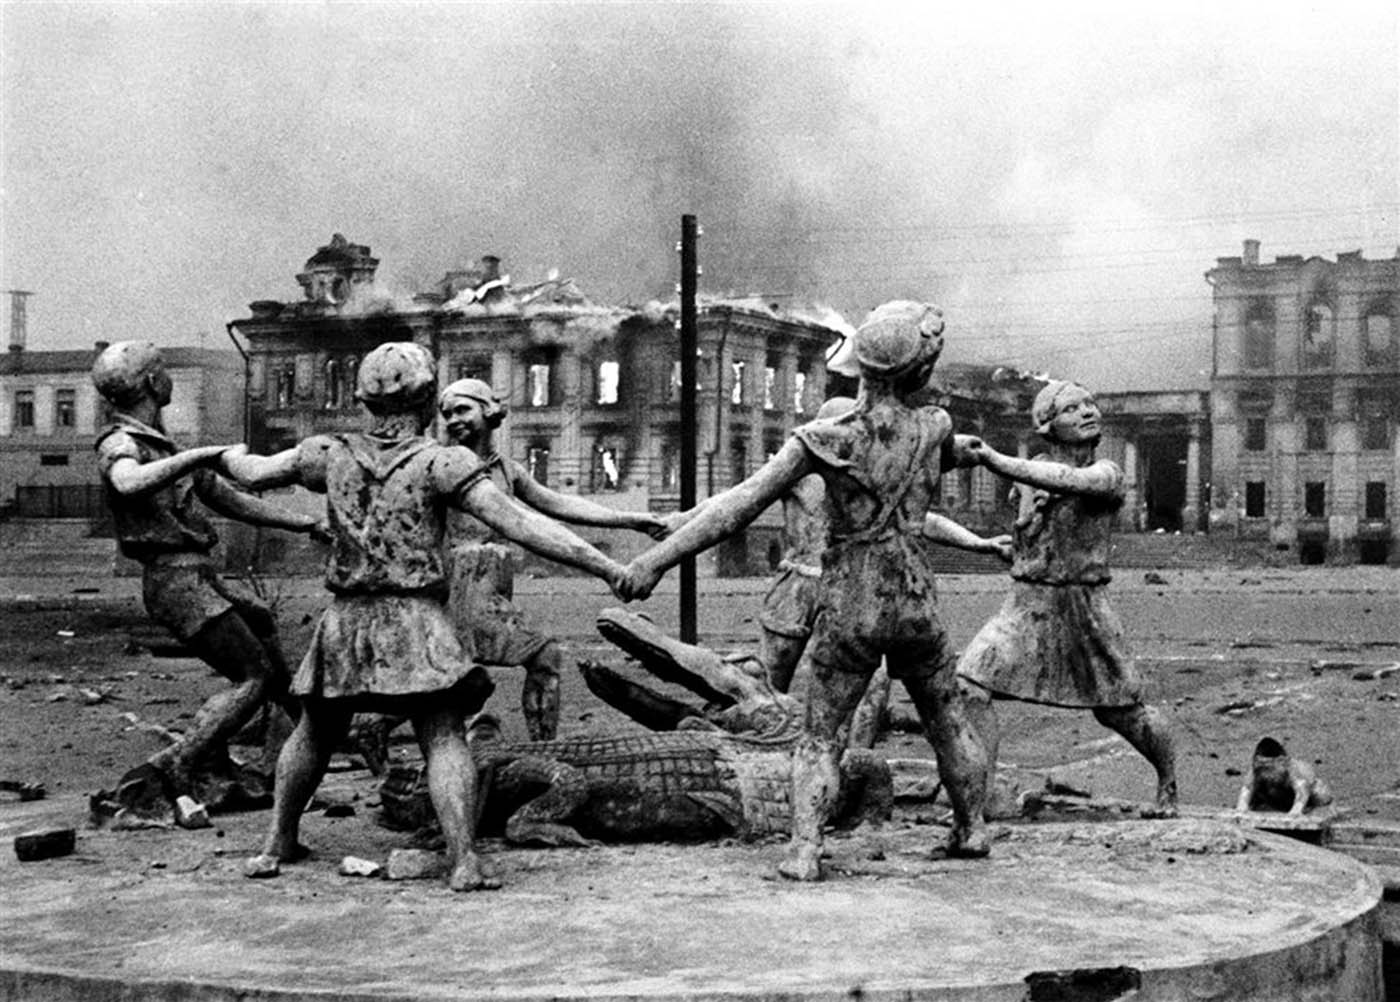 The statue of six children dancing around a crocodile became famous worldwide due to several pictures that a Soviet photographer took after the German army's devastating bombings.